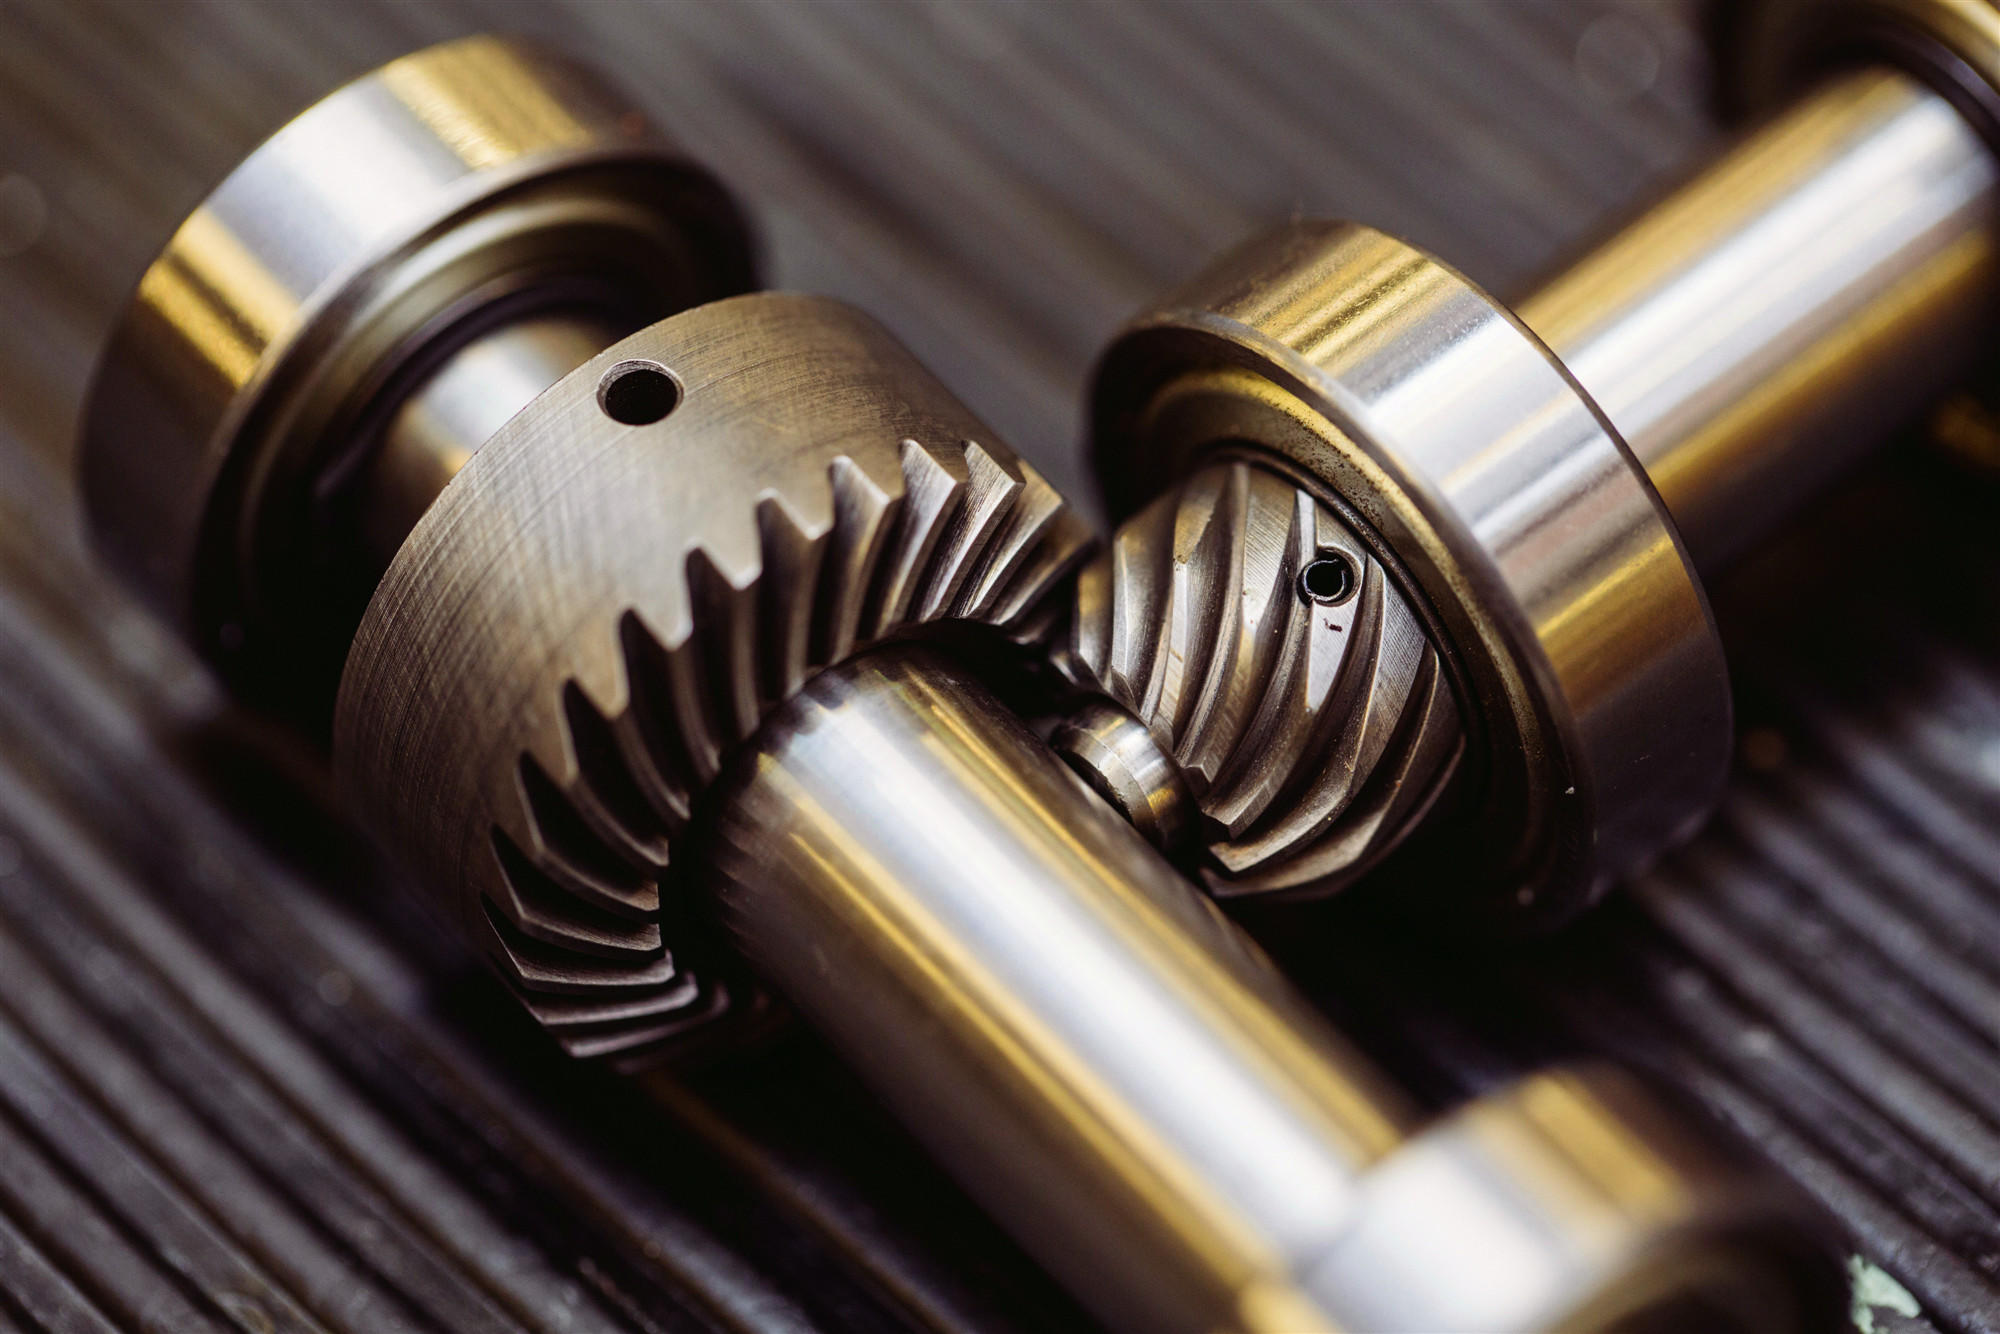 Which of the following is not an advantage of helical gears